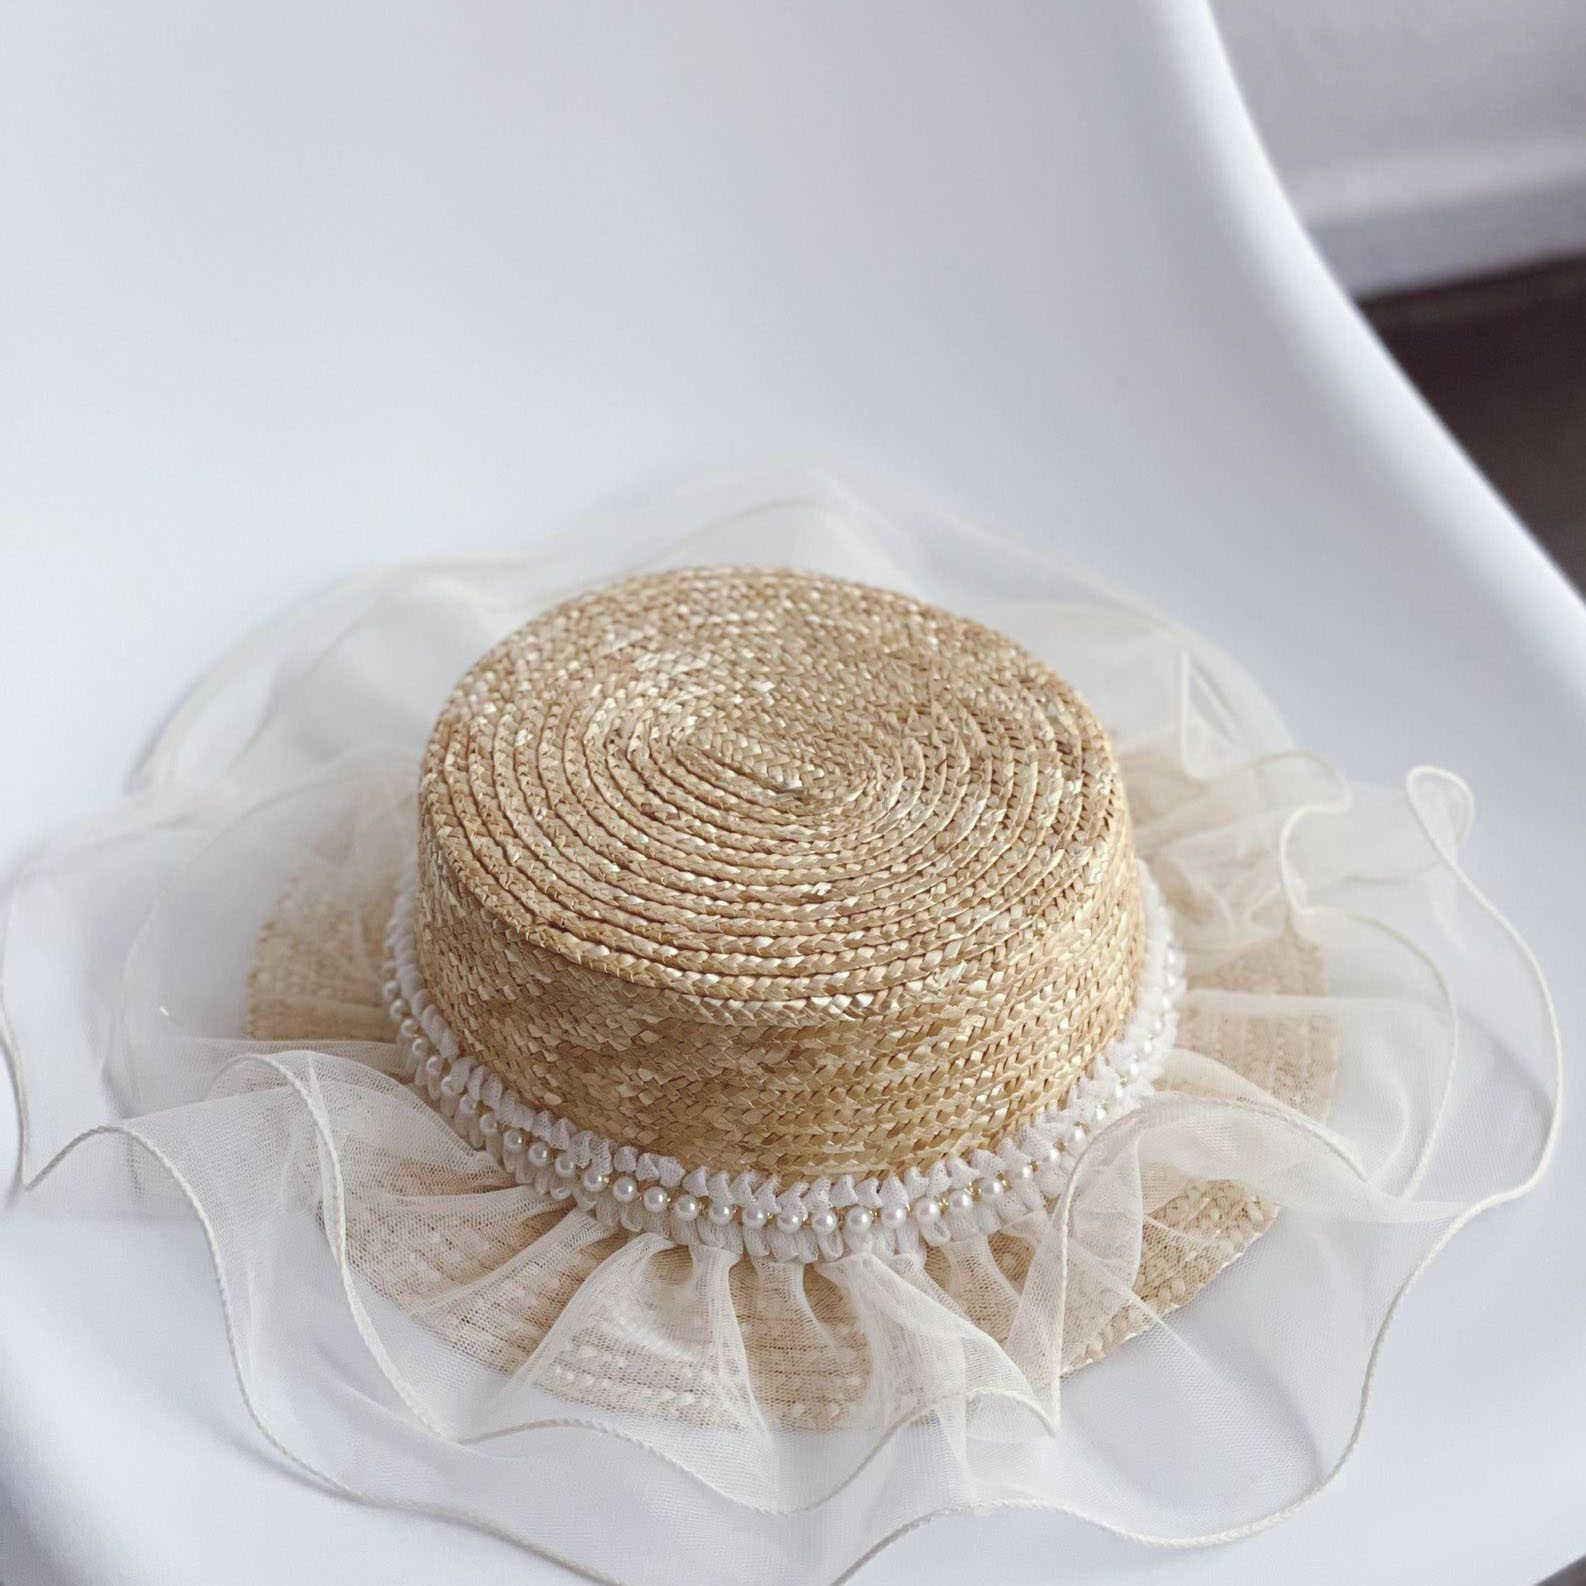 Summer Arrival Girls Fashion Pearl Hats Kids Lace Straw Hat 210712